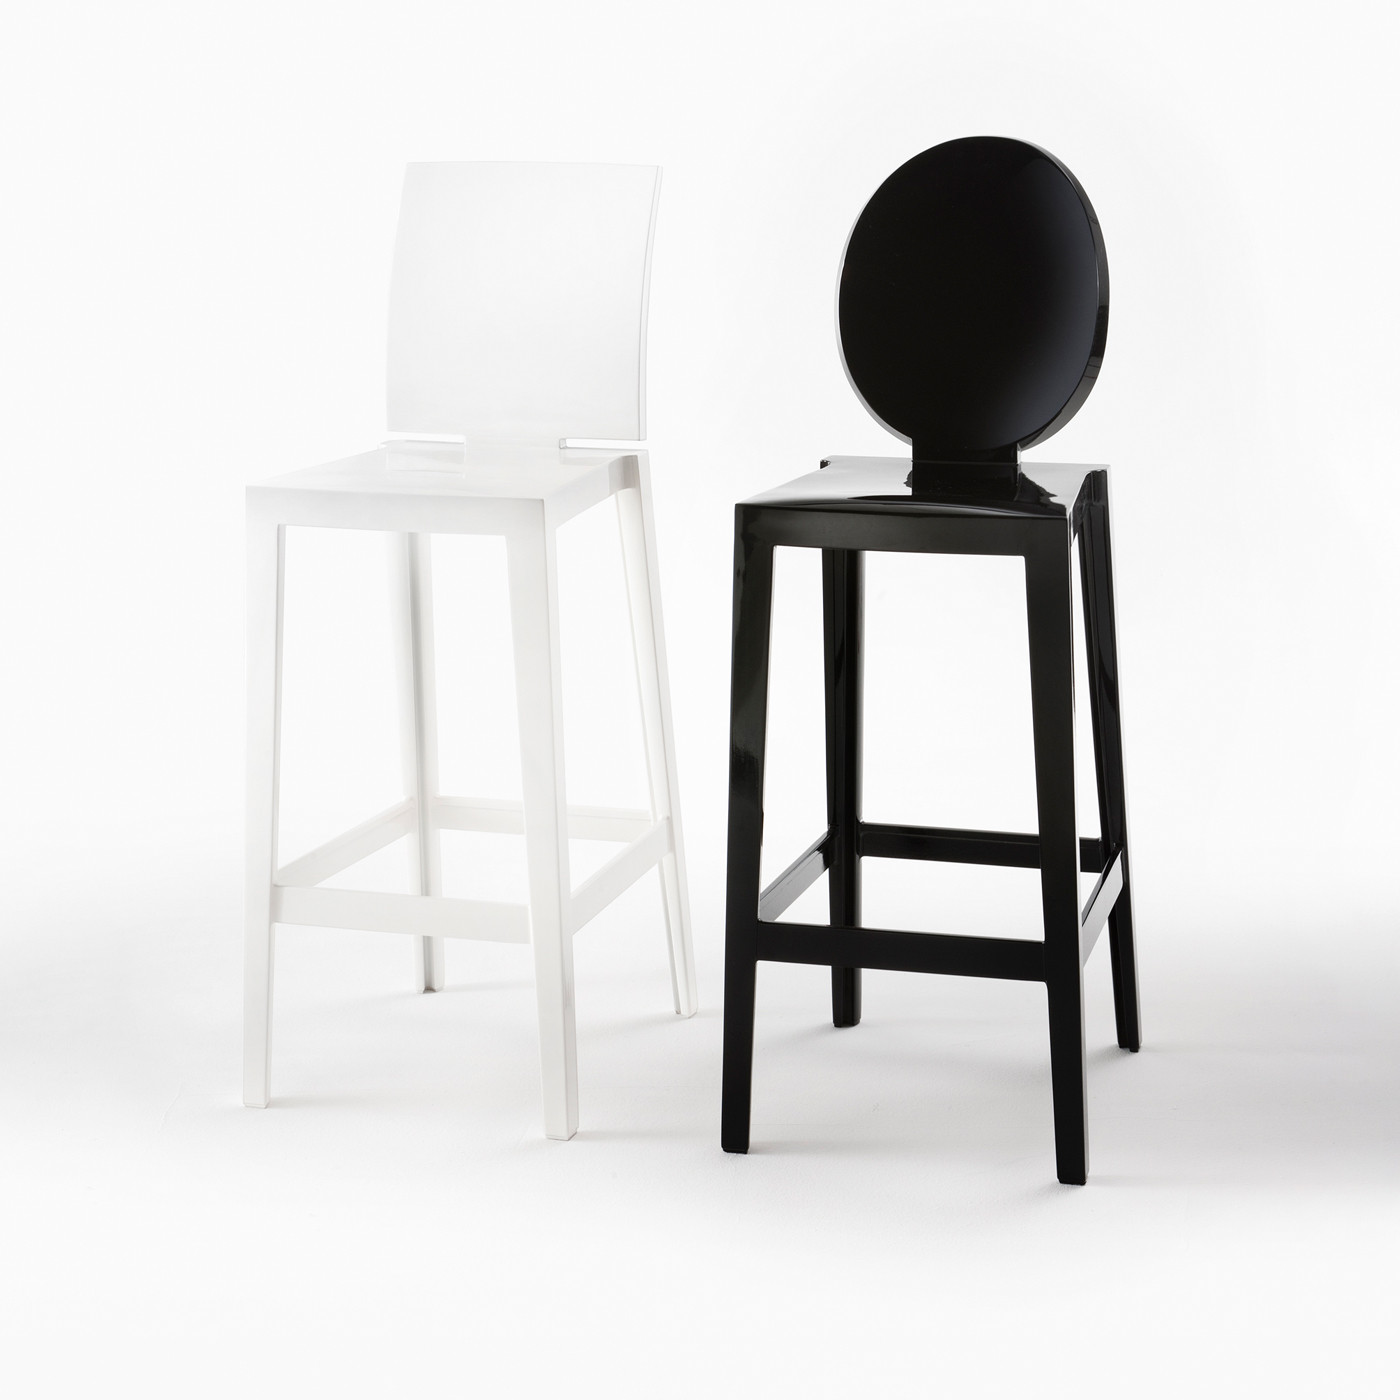 de cm Ghost bar65 tabouret One hauteur Please More d'assise MoreOne Kartell TJlcF1K